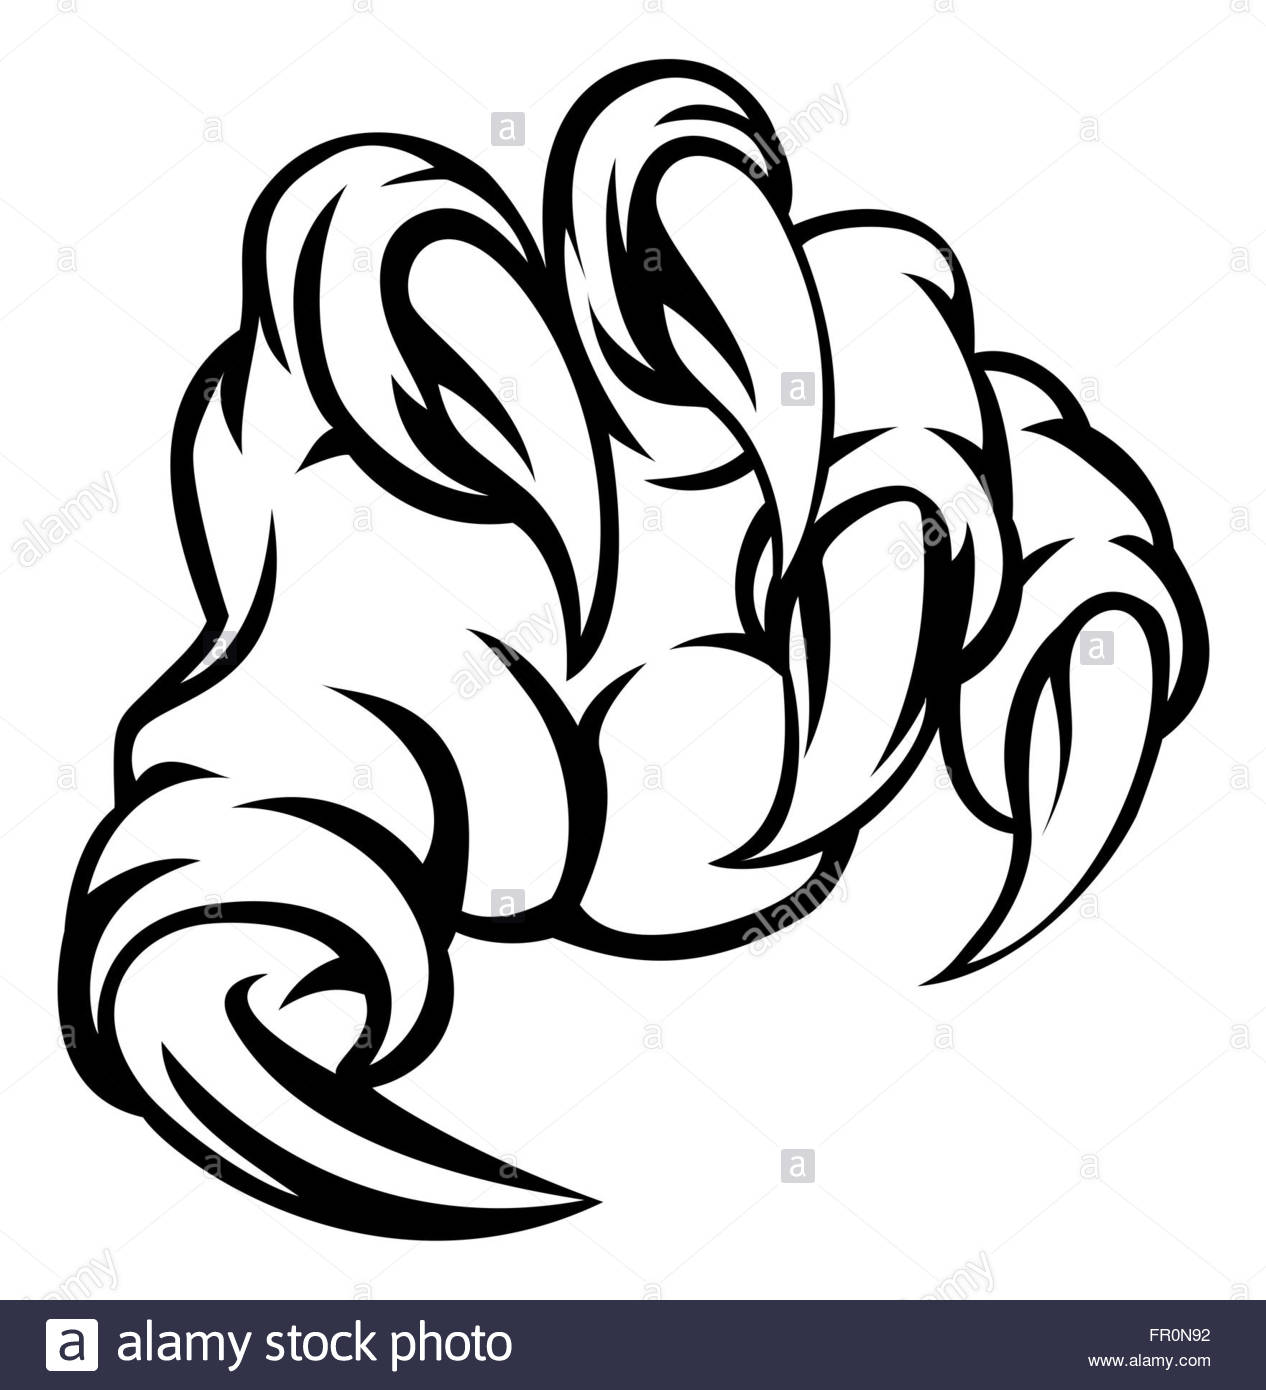 1266x1390 A Monster Claw Hand Illustration Stock Photo 100205646